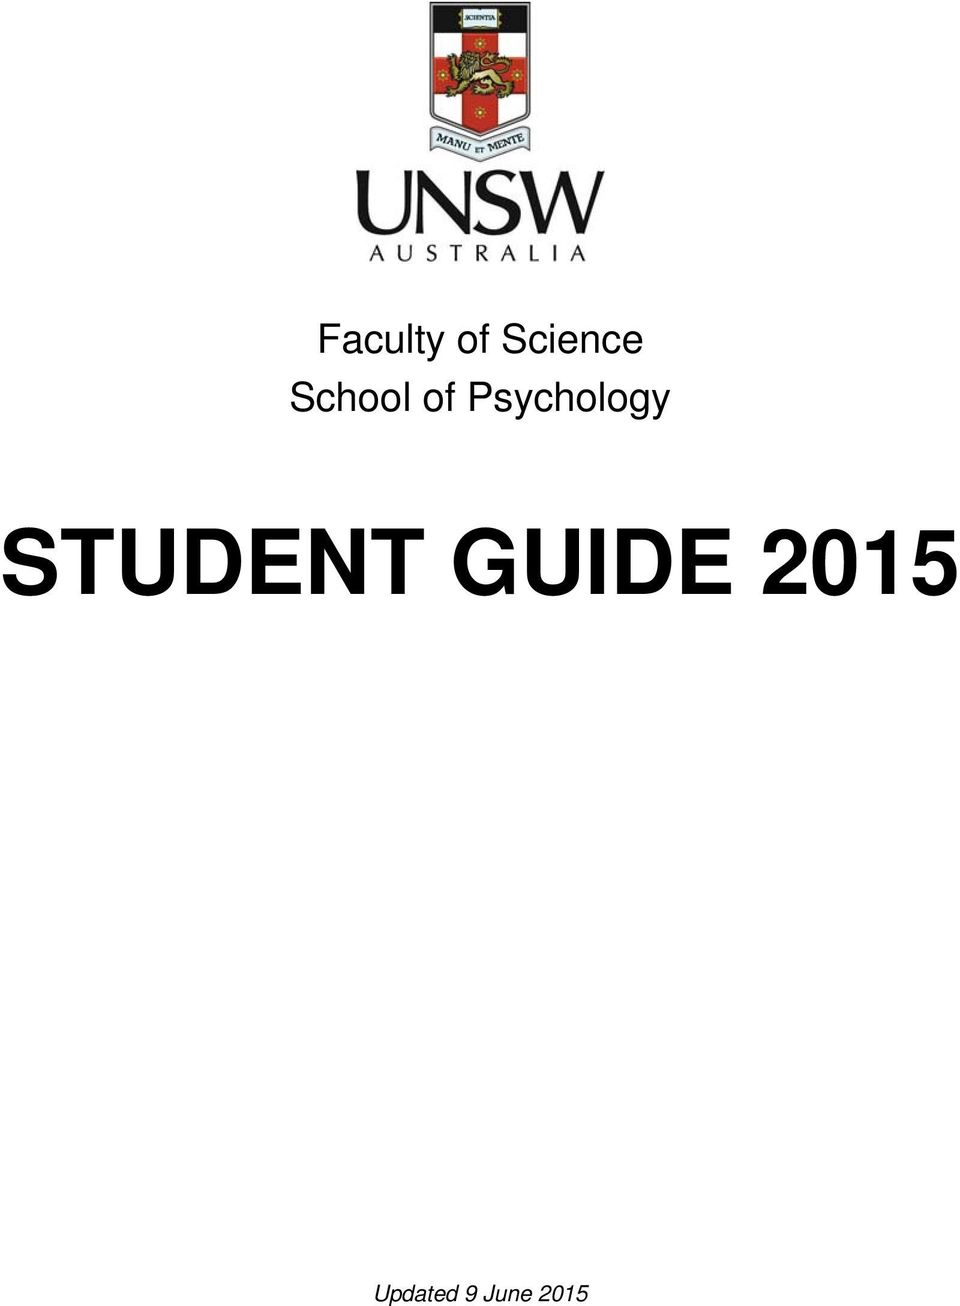 STUDENT GUIDE 2015